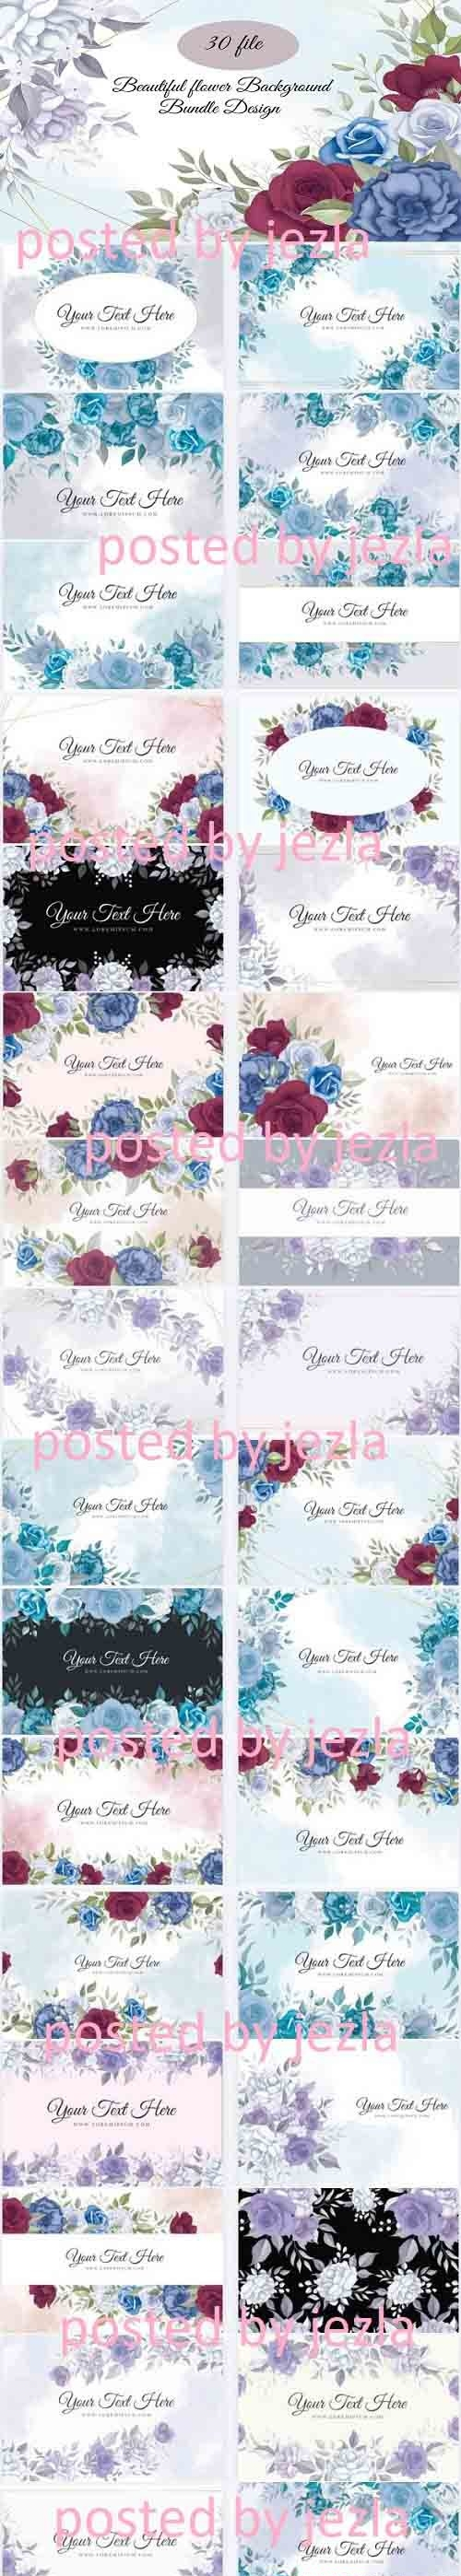 Flowers Background Bundle - 31 Premium Graphics